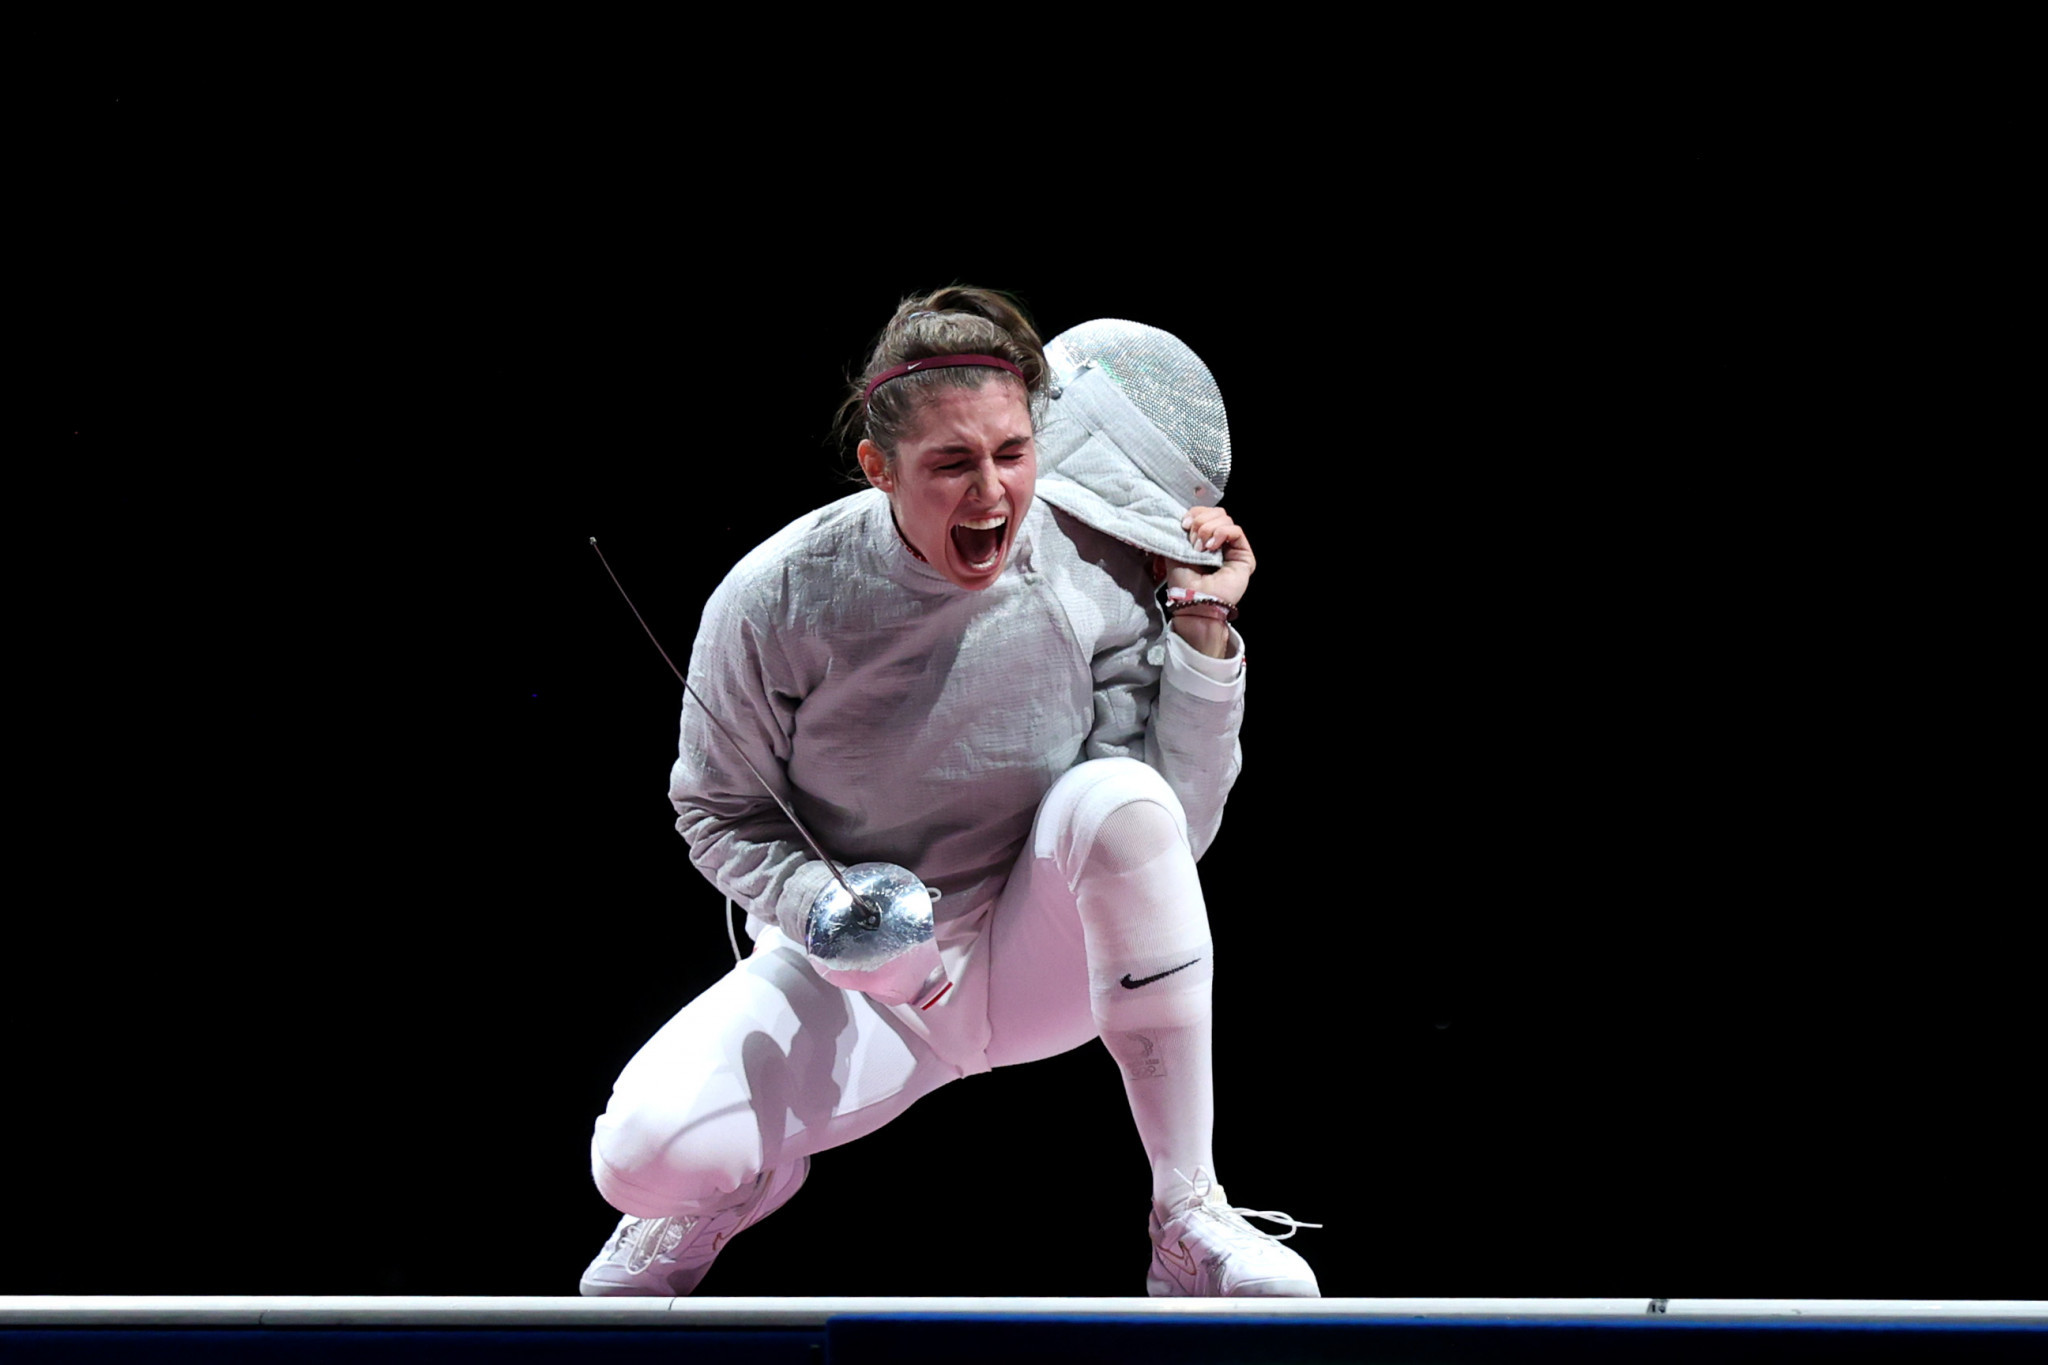 Sofia Pozdniakova beat fellow ROC fencer Sofya Velikaya to claim Olympic gold in the women's sabre at Tokyo 2020 ©Getty Images